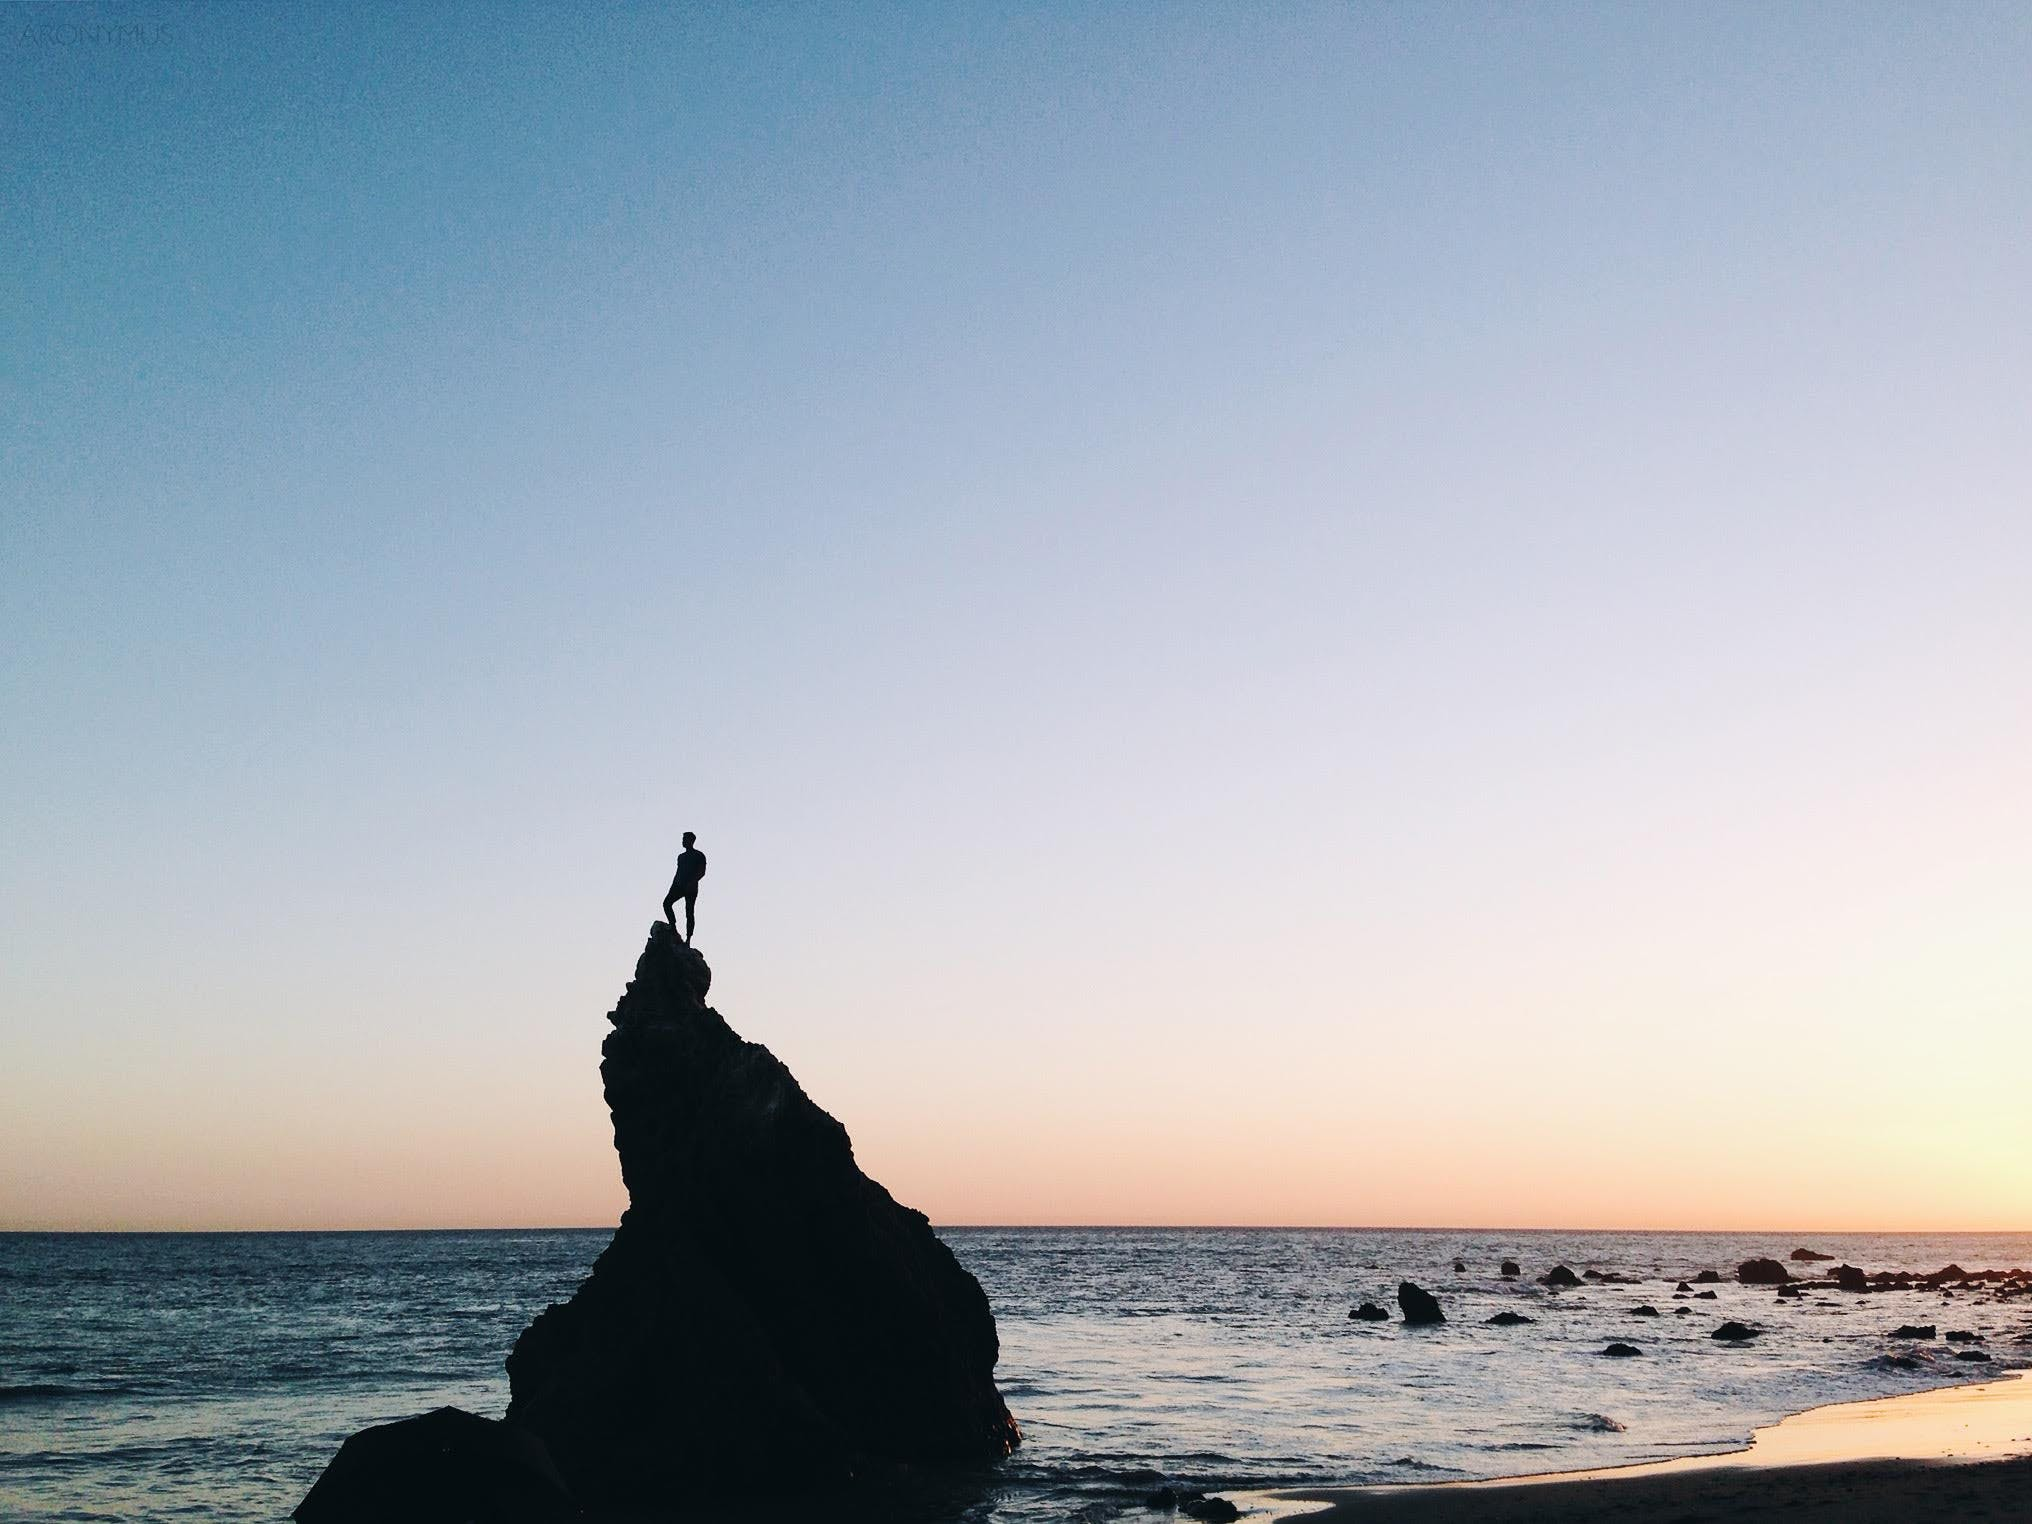 Silhouette of Person Standing on Rock on Beach Shore during Yellow Sunset